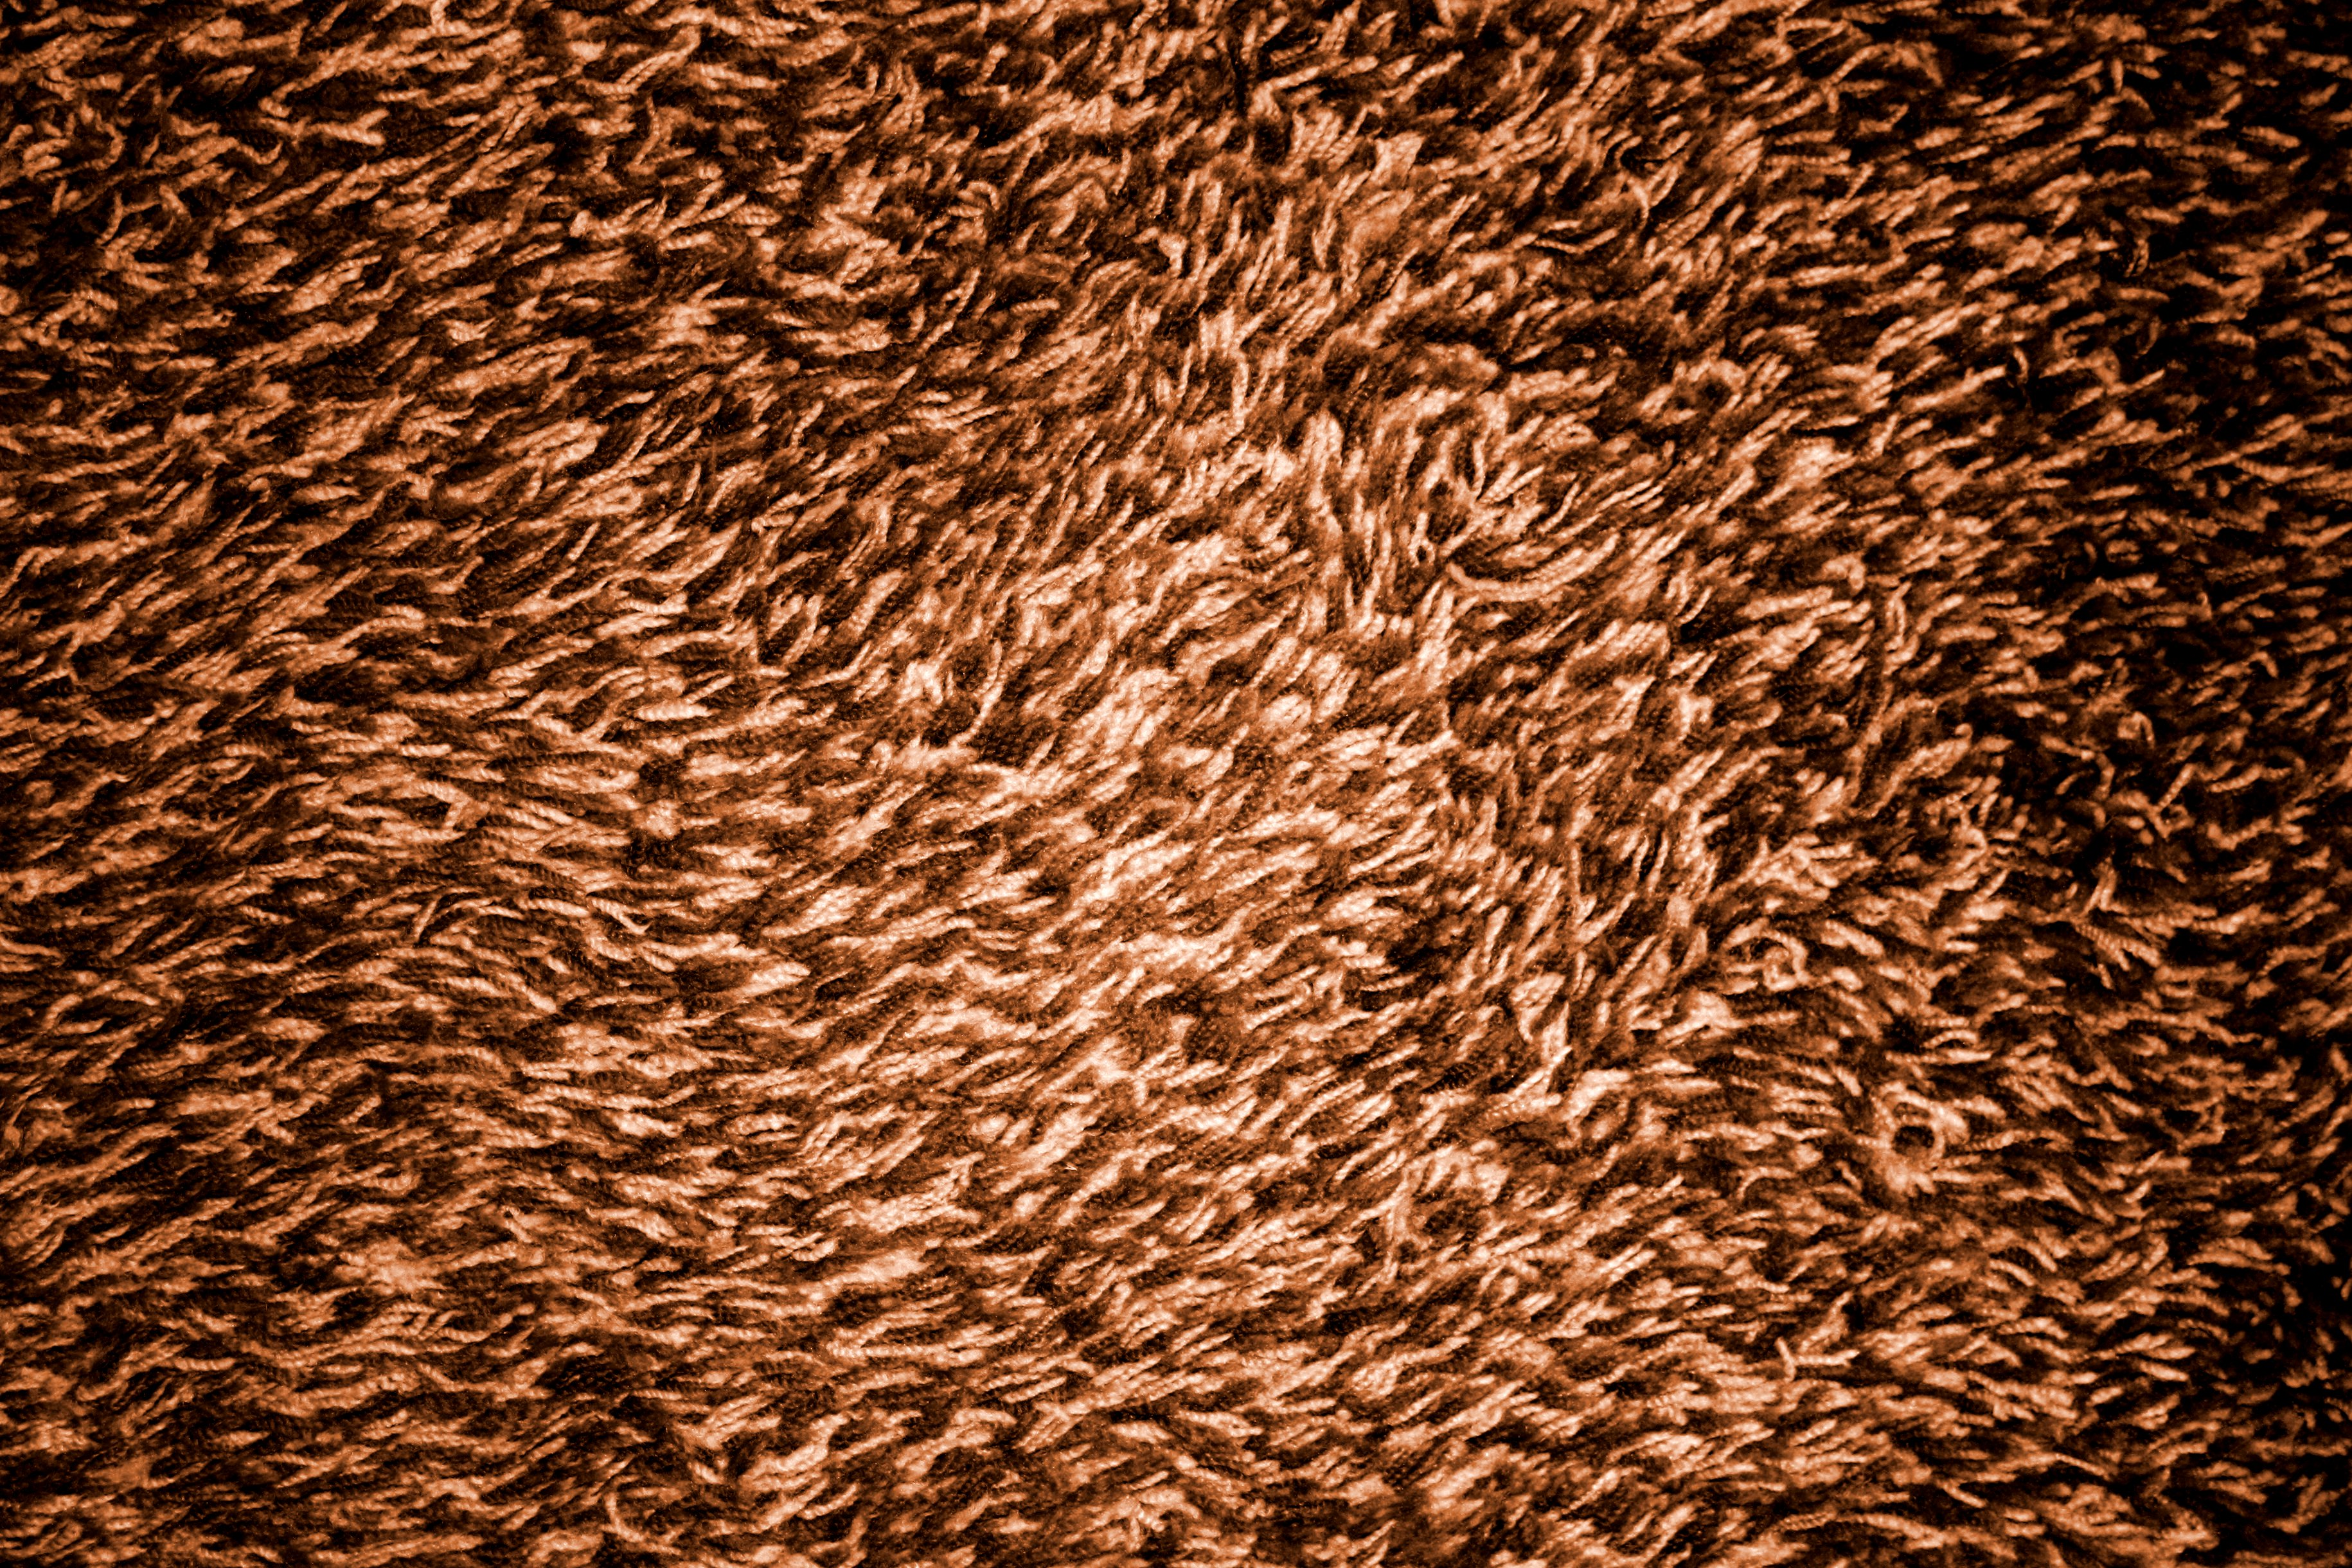 Brown Shag Carpeting Texture Picture Free Photograph